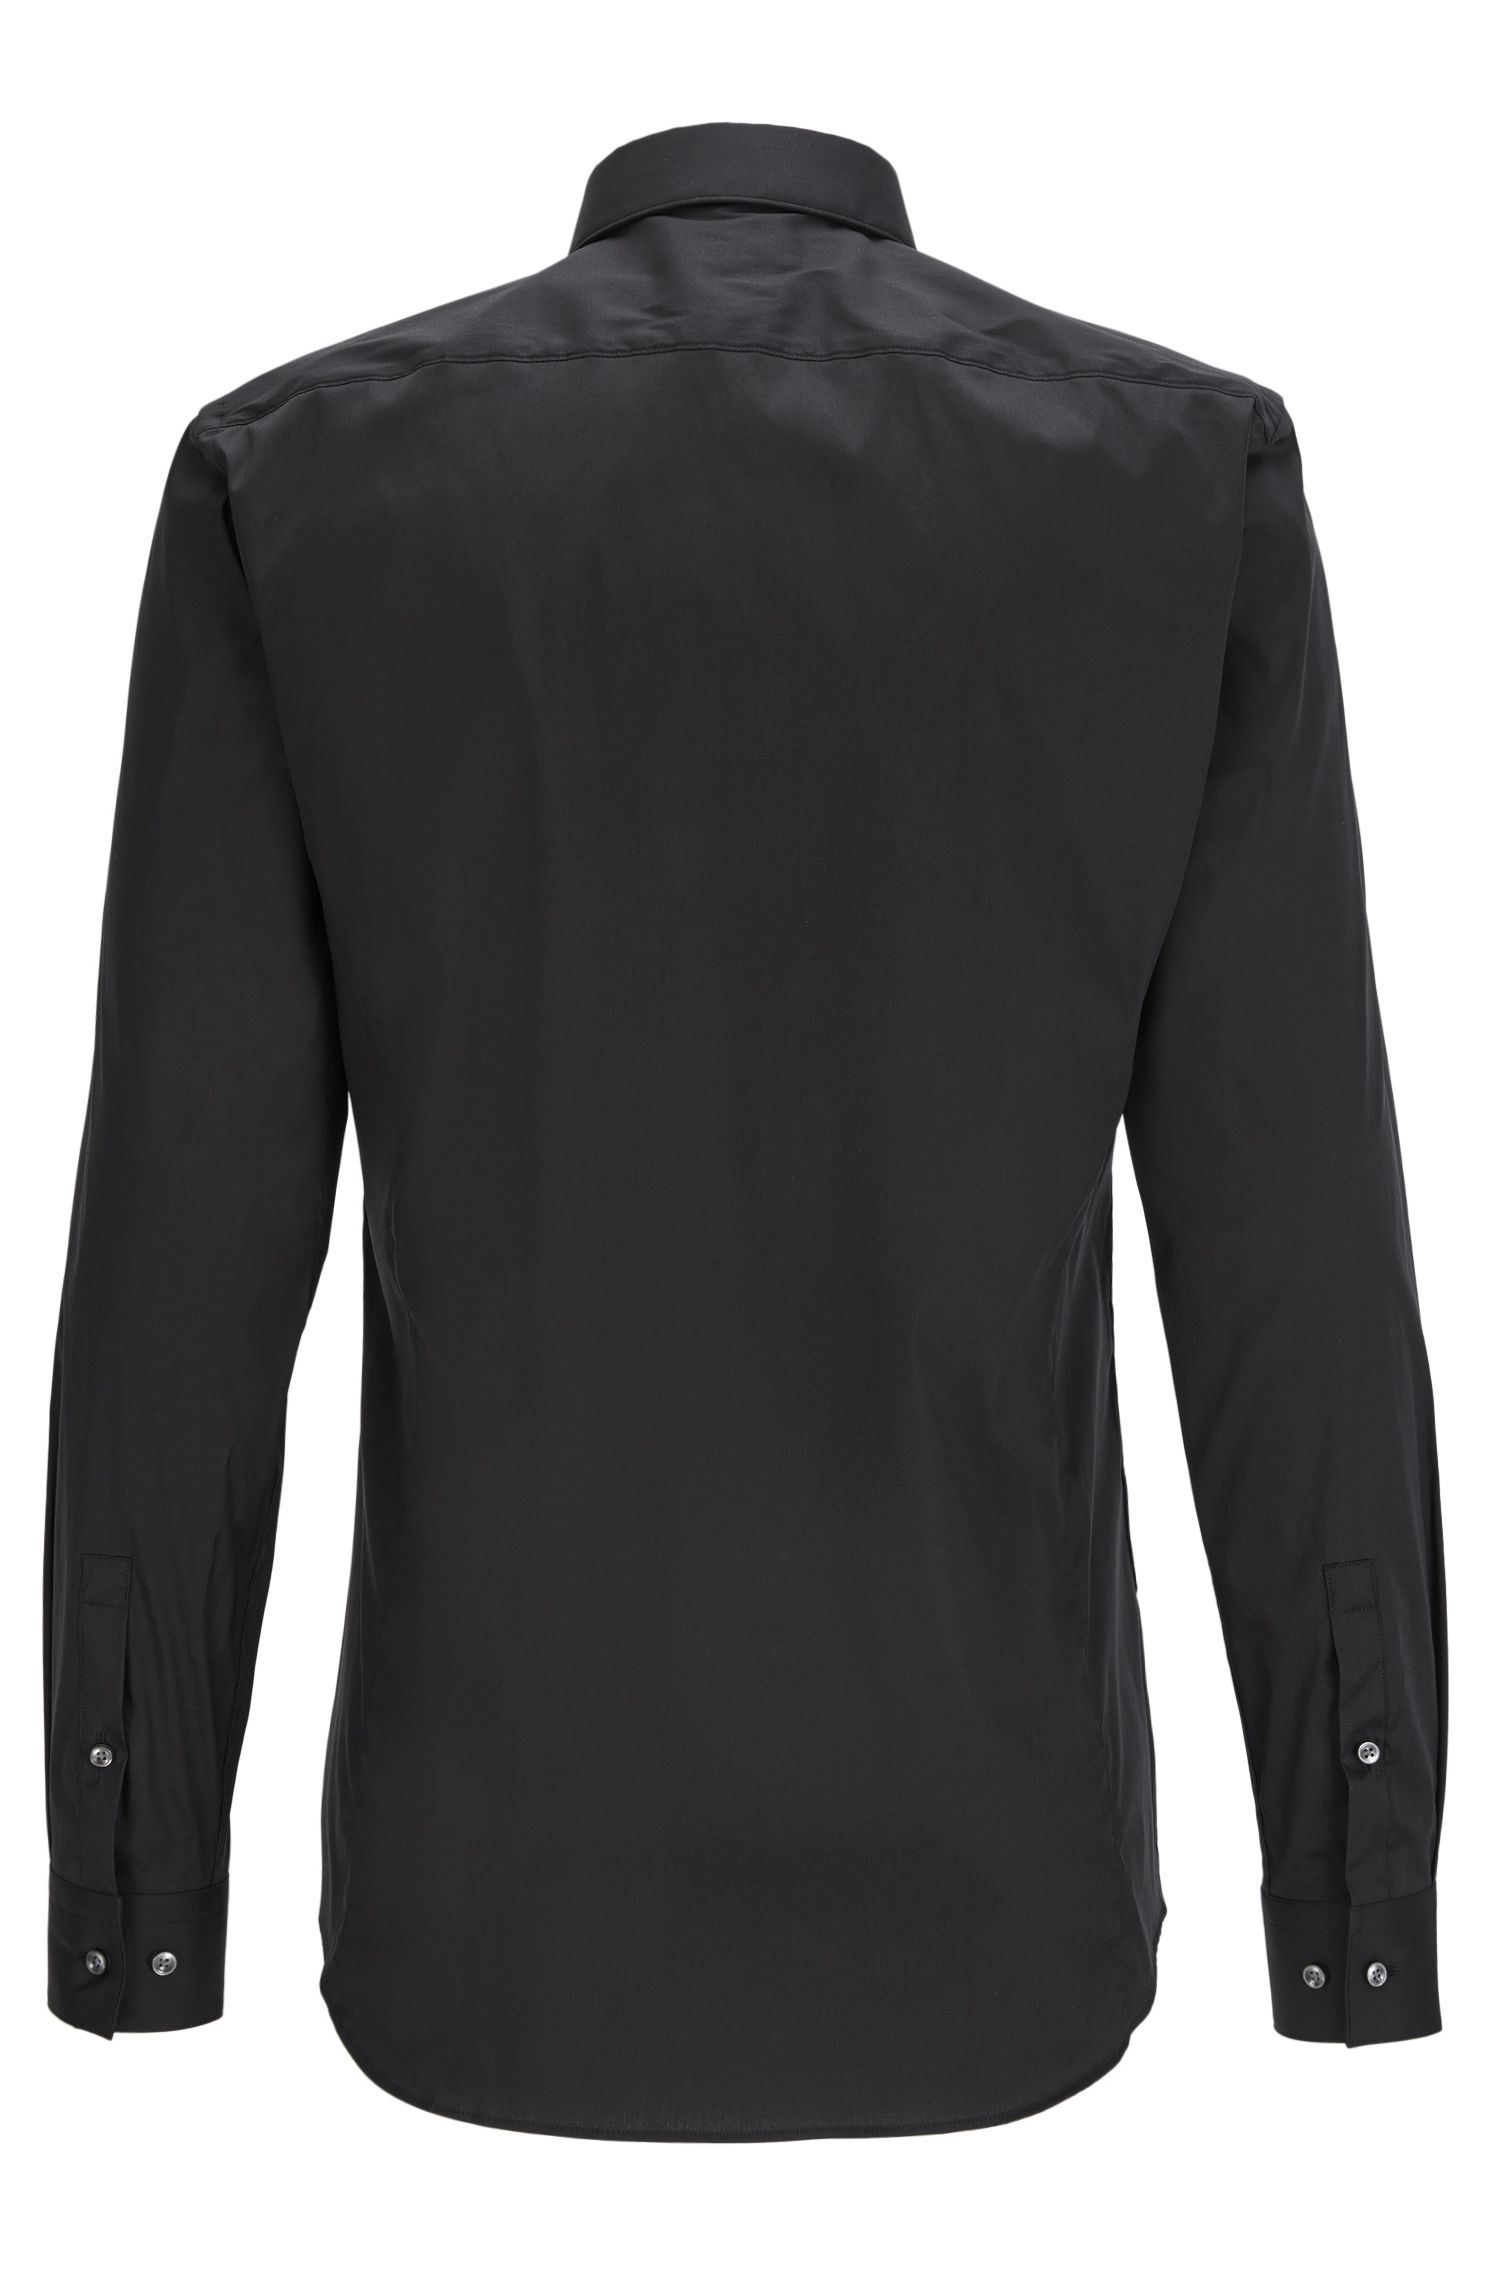 Cotton Blend Shirt, Slim Fit | Ilan, Black